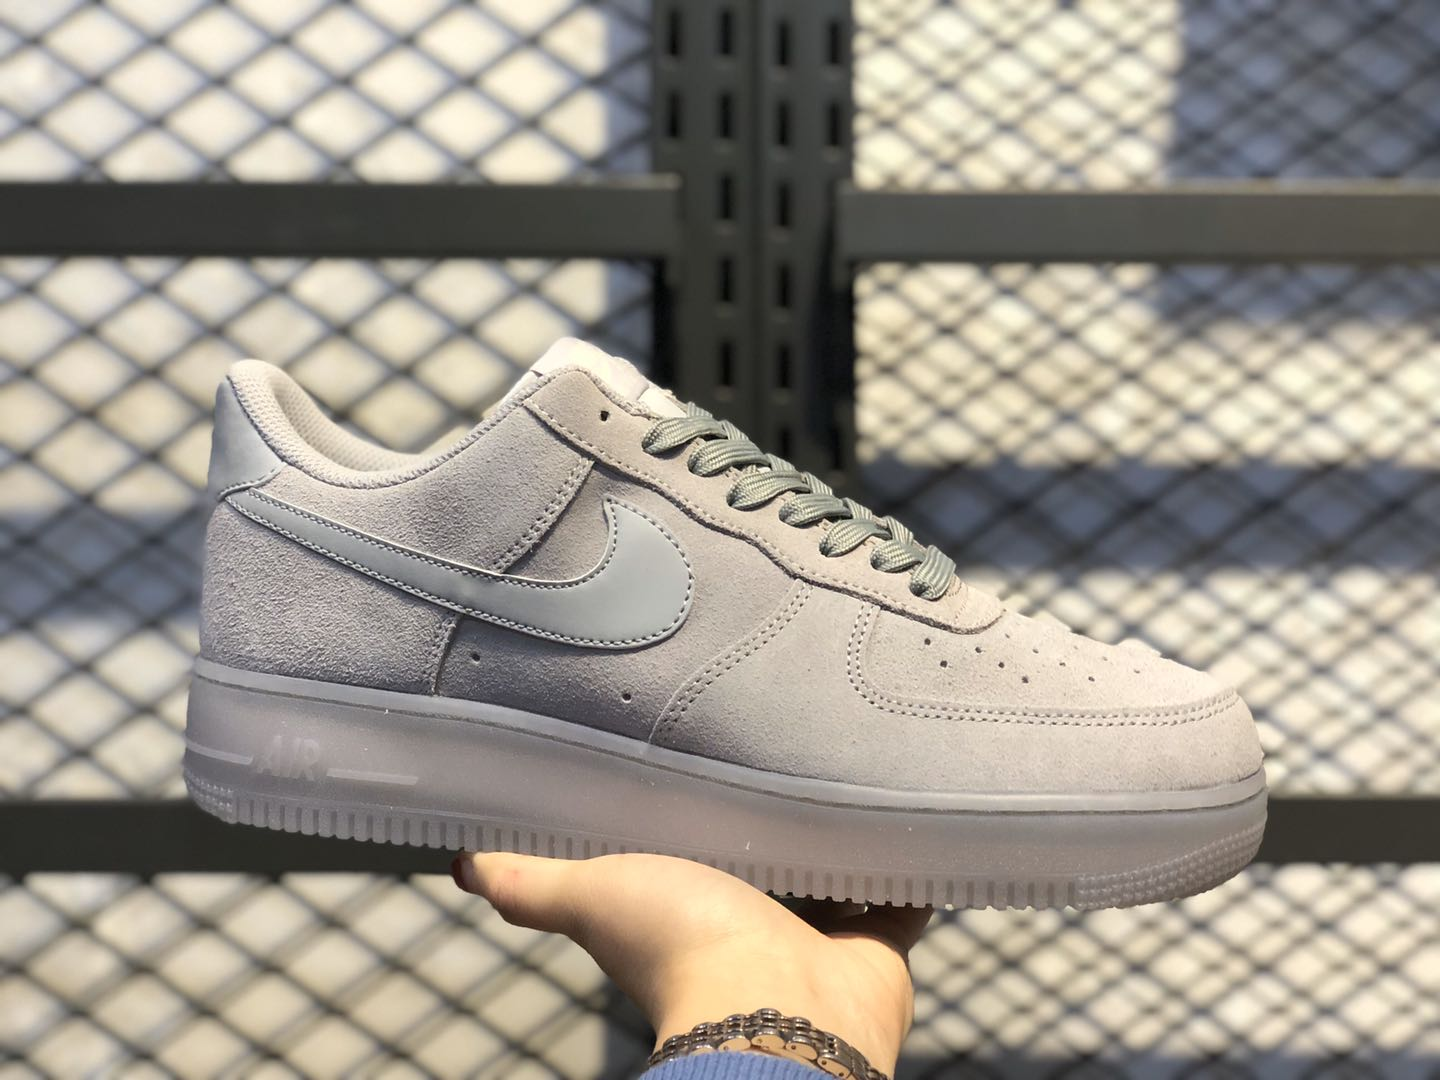 Nike Air Force 1 Low Wolf Grey/Wolf Grey For Sale BQ4329-001